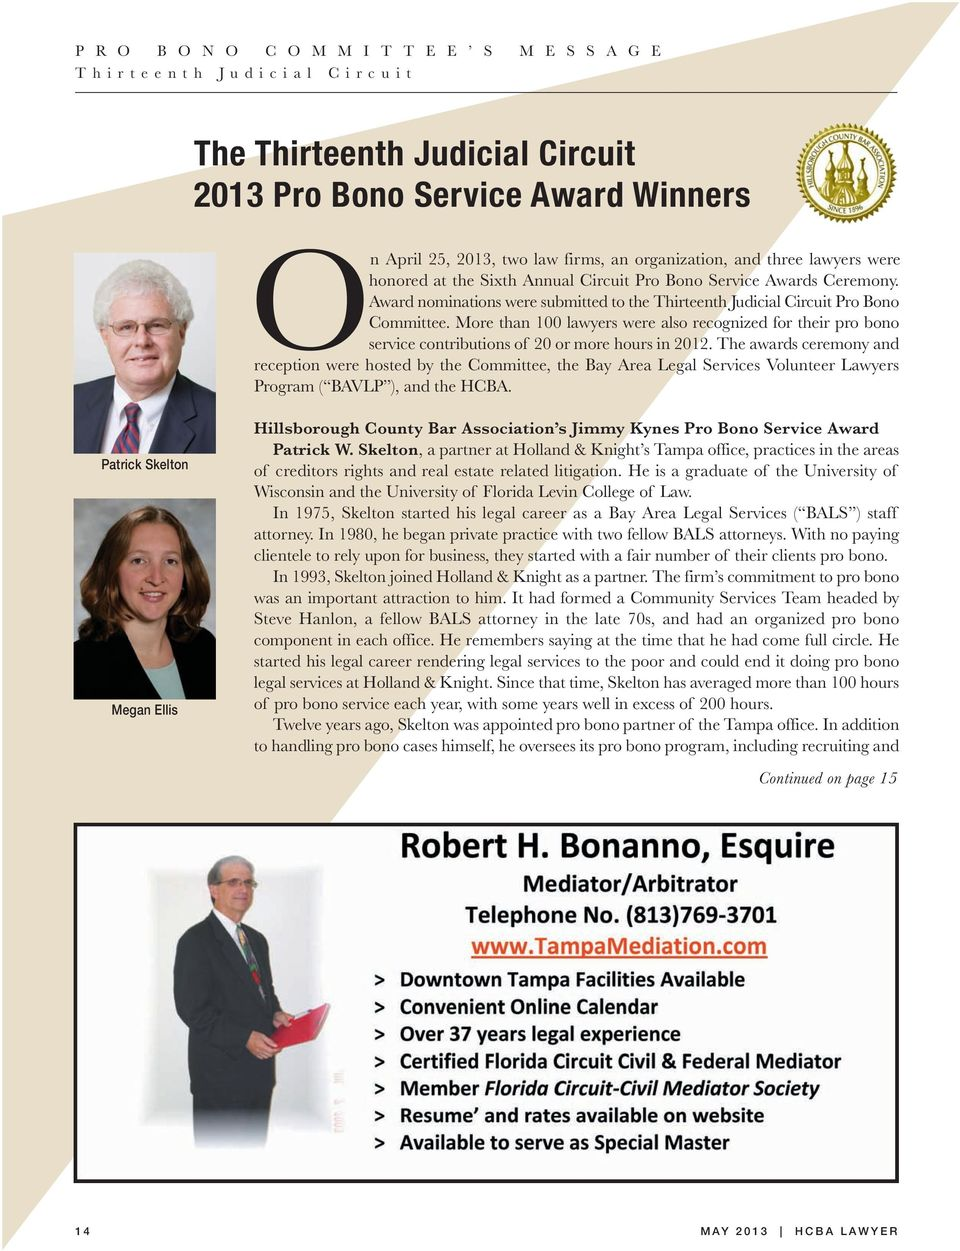 More than 100 lawyers were also recognized for their pro bono service contributions of 20 or more hours in 2012.